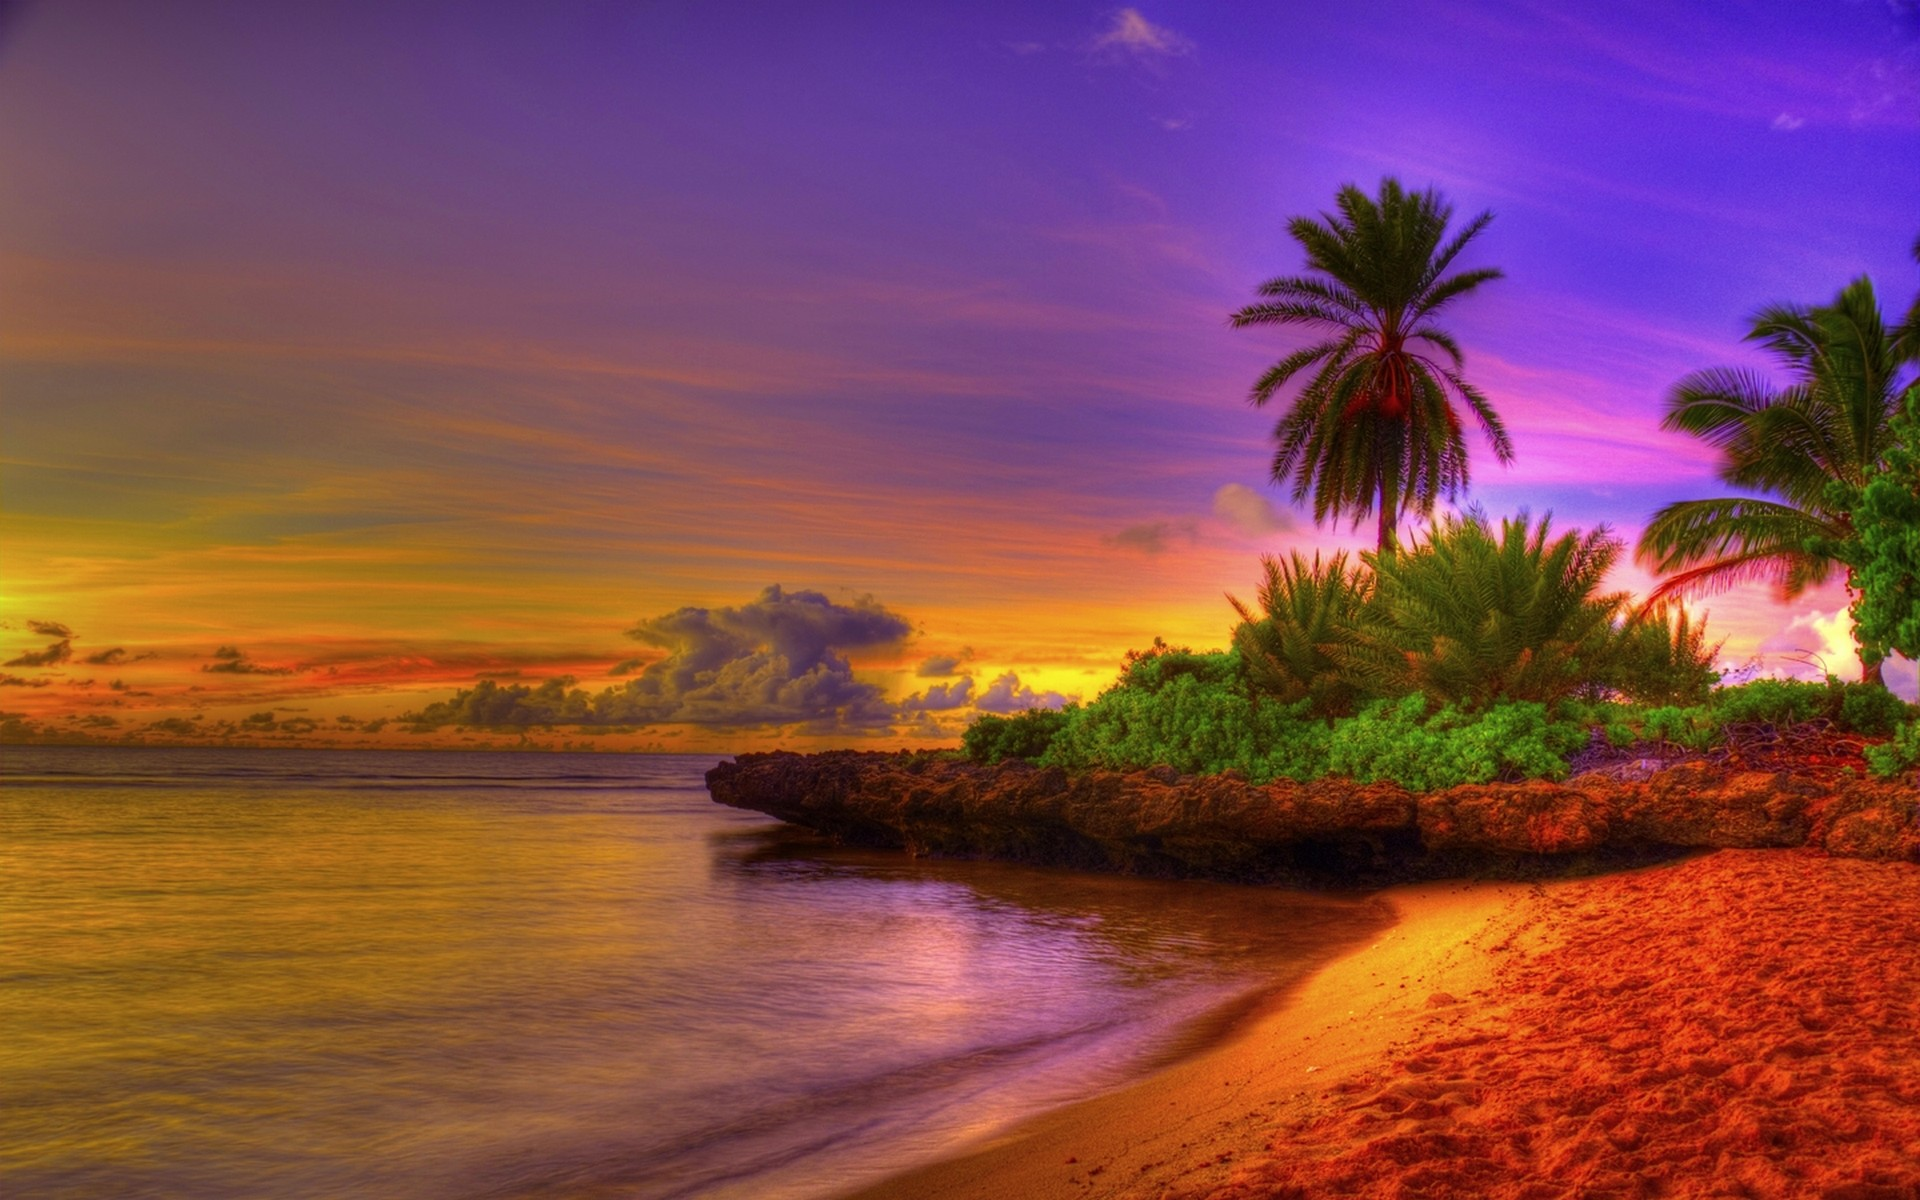 1920x1200 tropical beach image beautiful tropical beach sunset tropical beach .